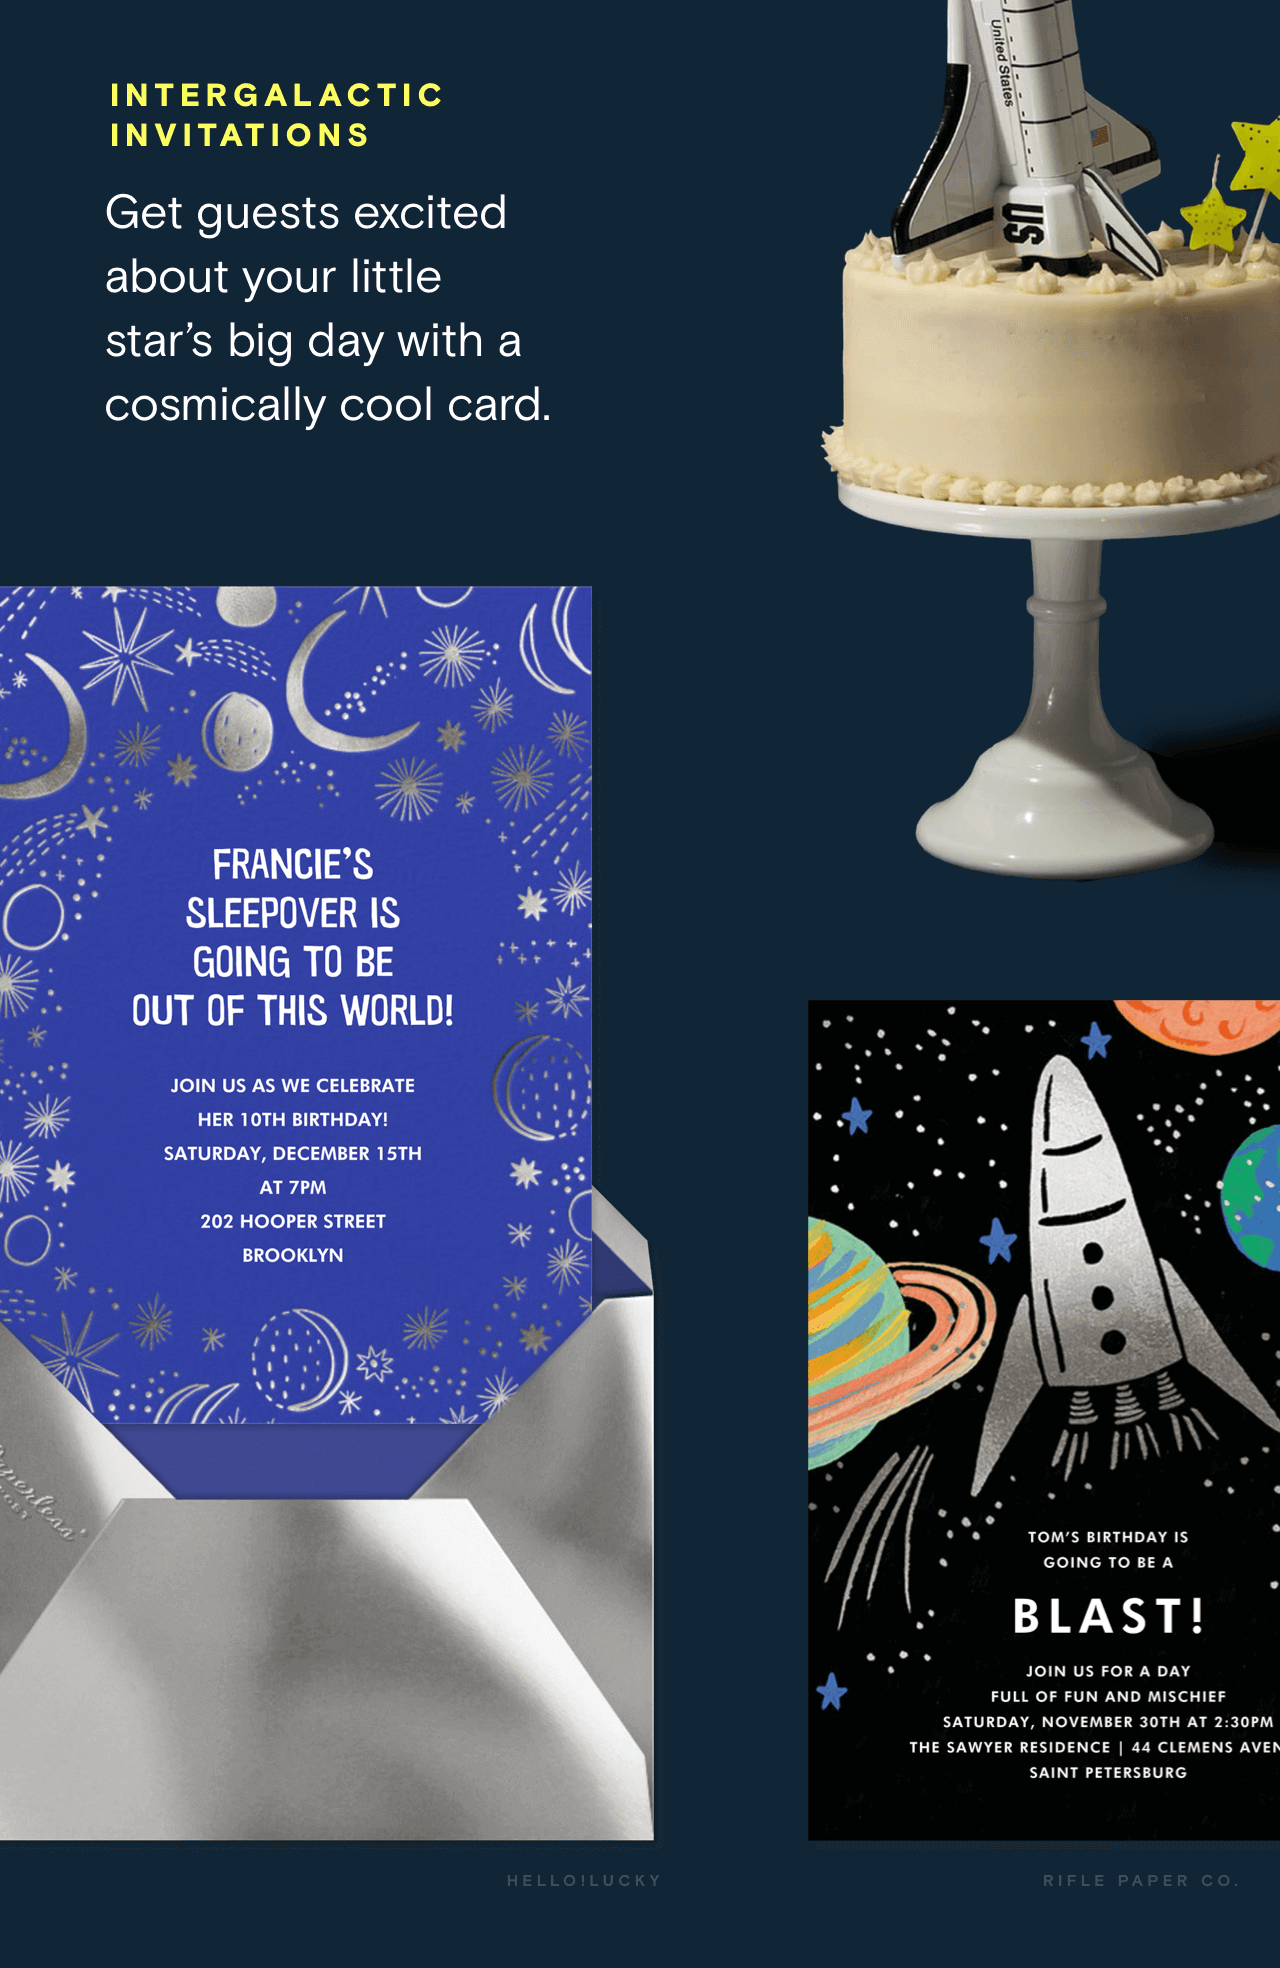 Intergalactic invitations: Get guests excited about your little star's big day with a cosmically cool online card.